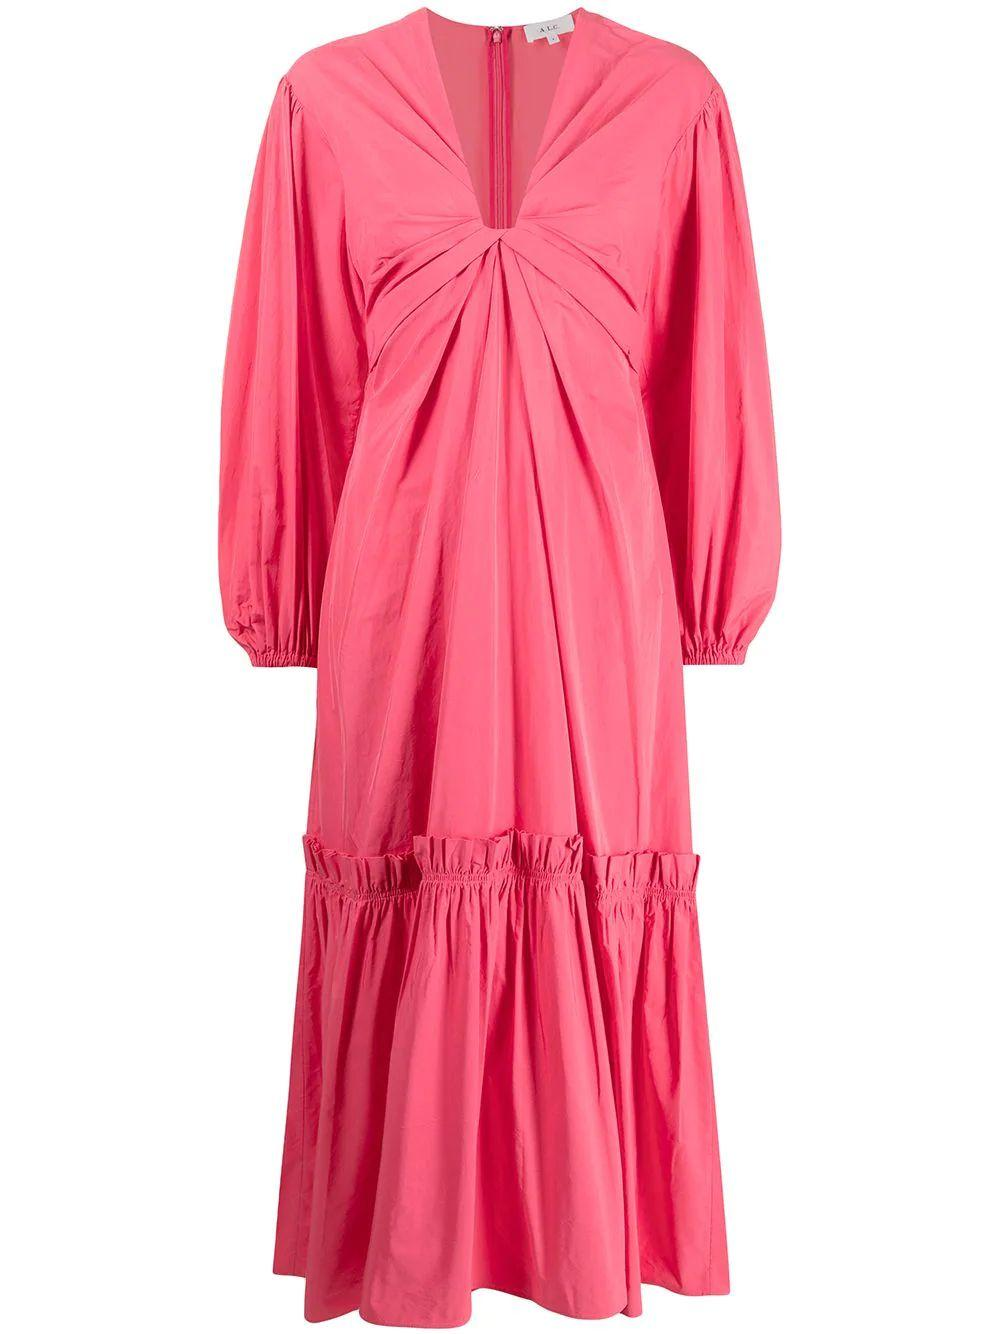 Irena Long Sleeve Cotton Tiered Maxi Dress Item # 6DRES01253